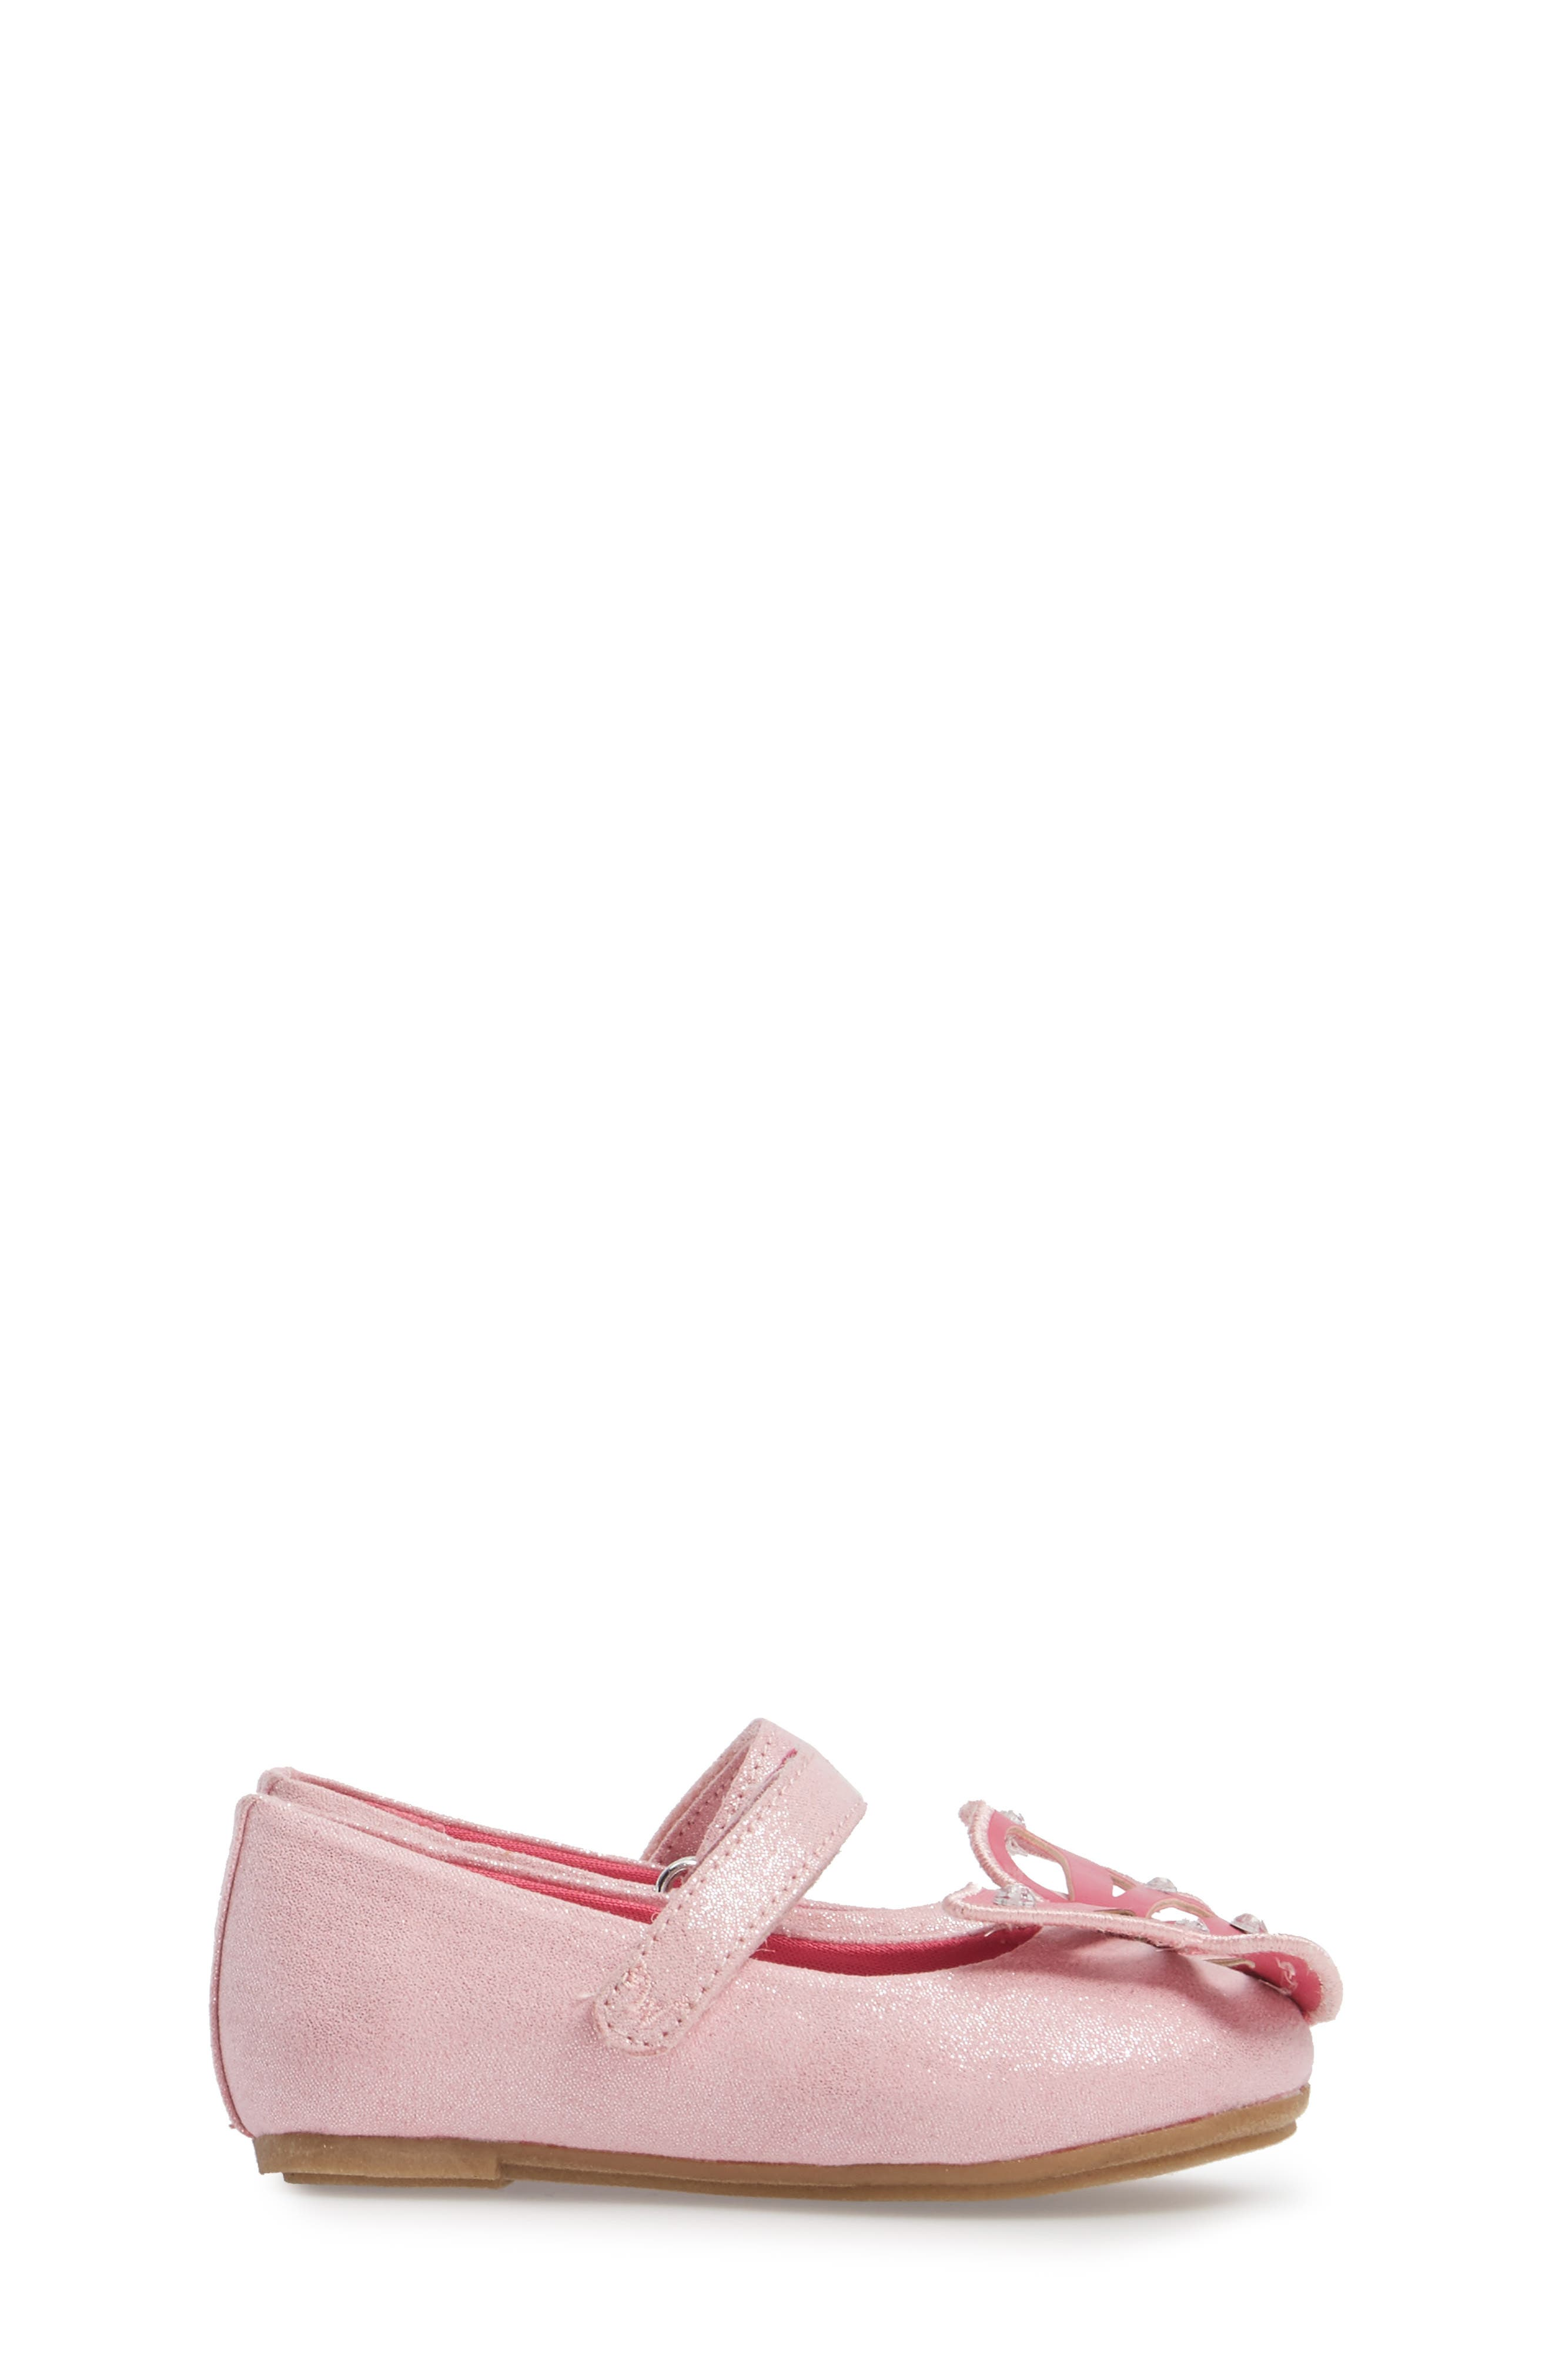 WELLIEWISHERS FROM AMERICAN GIRL,                             Flutter Wings Embellished Ballet Flat,                             Alternate thumbnail 3, color,                             650